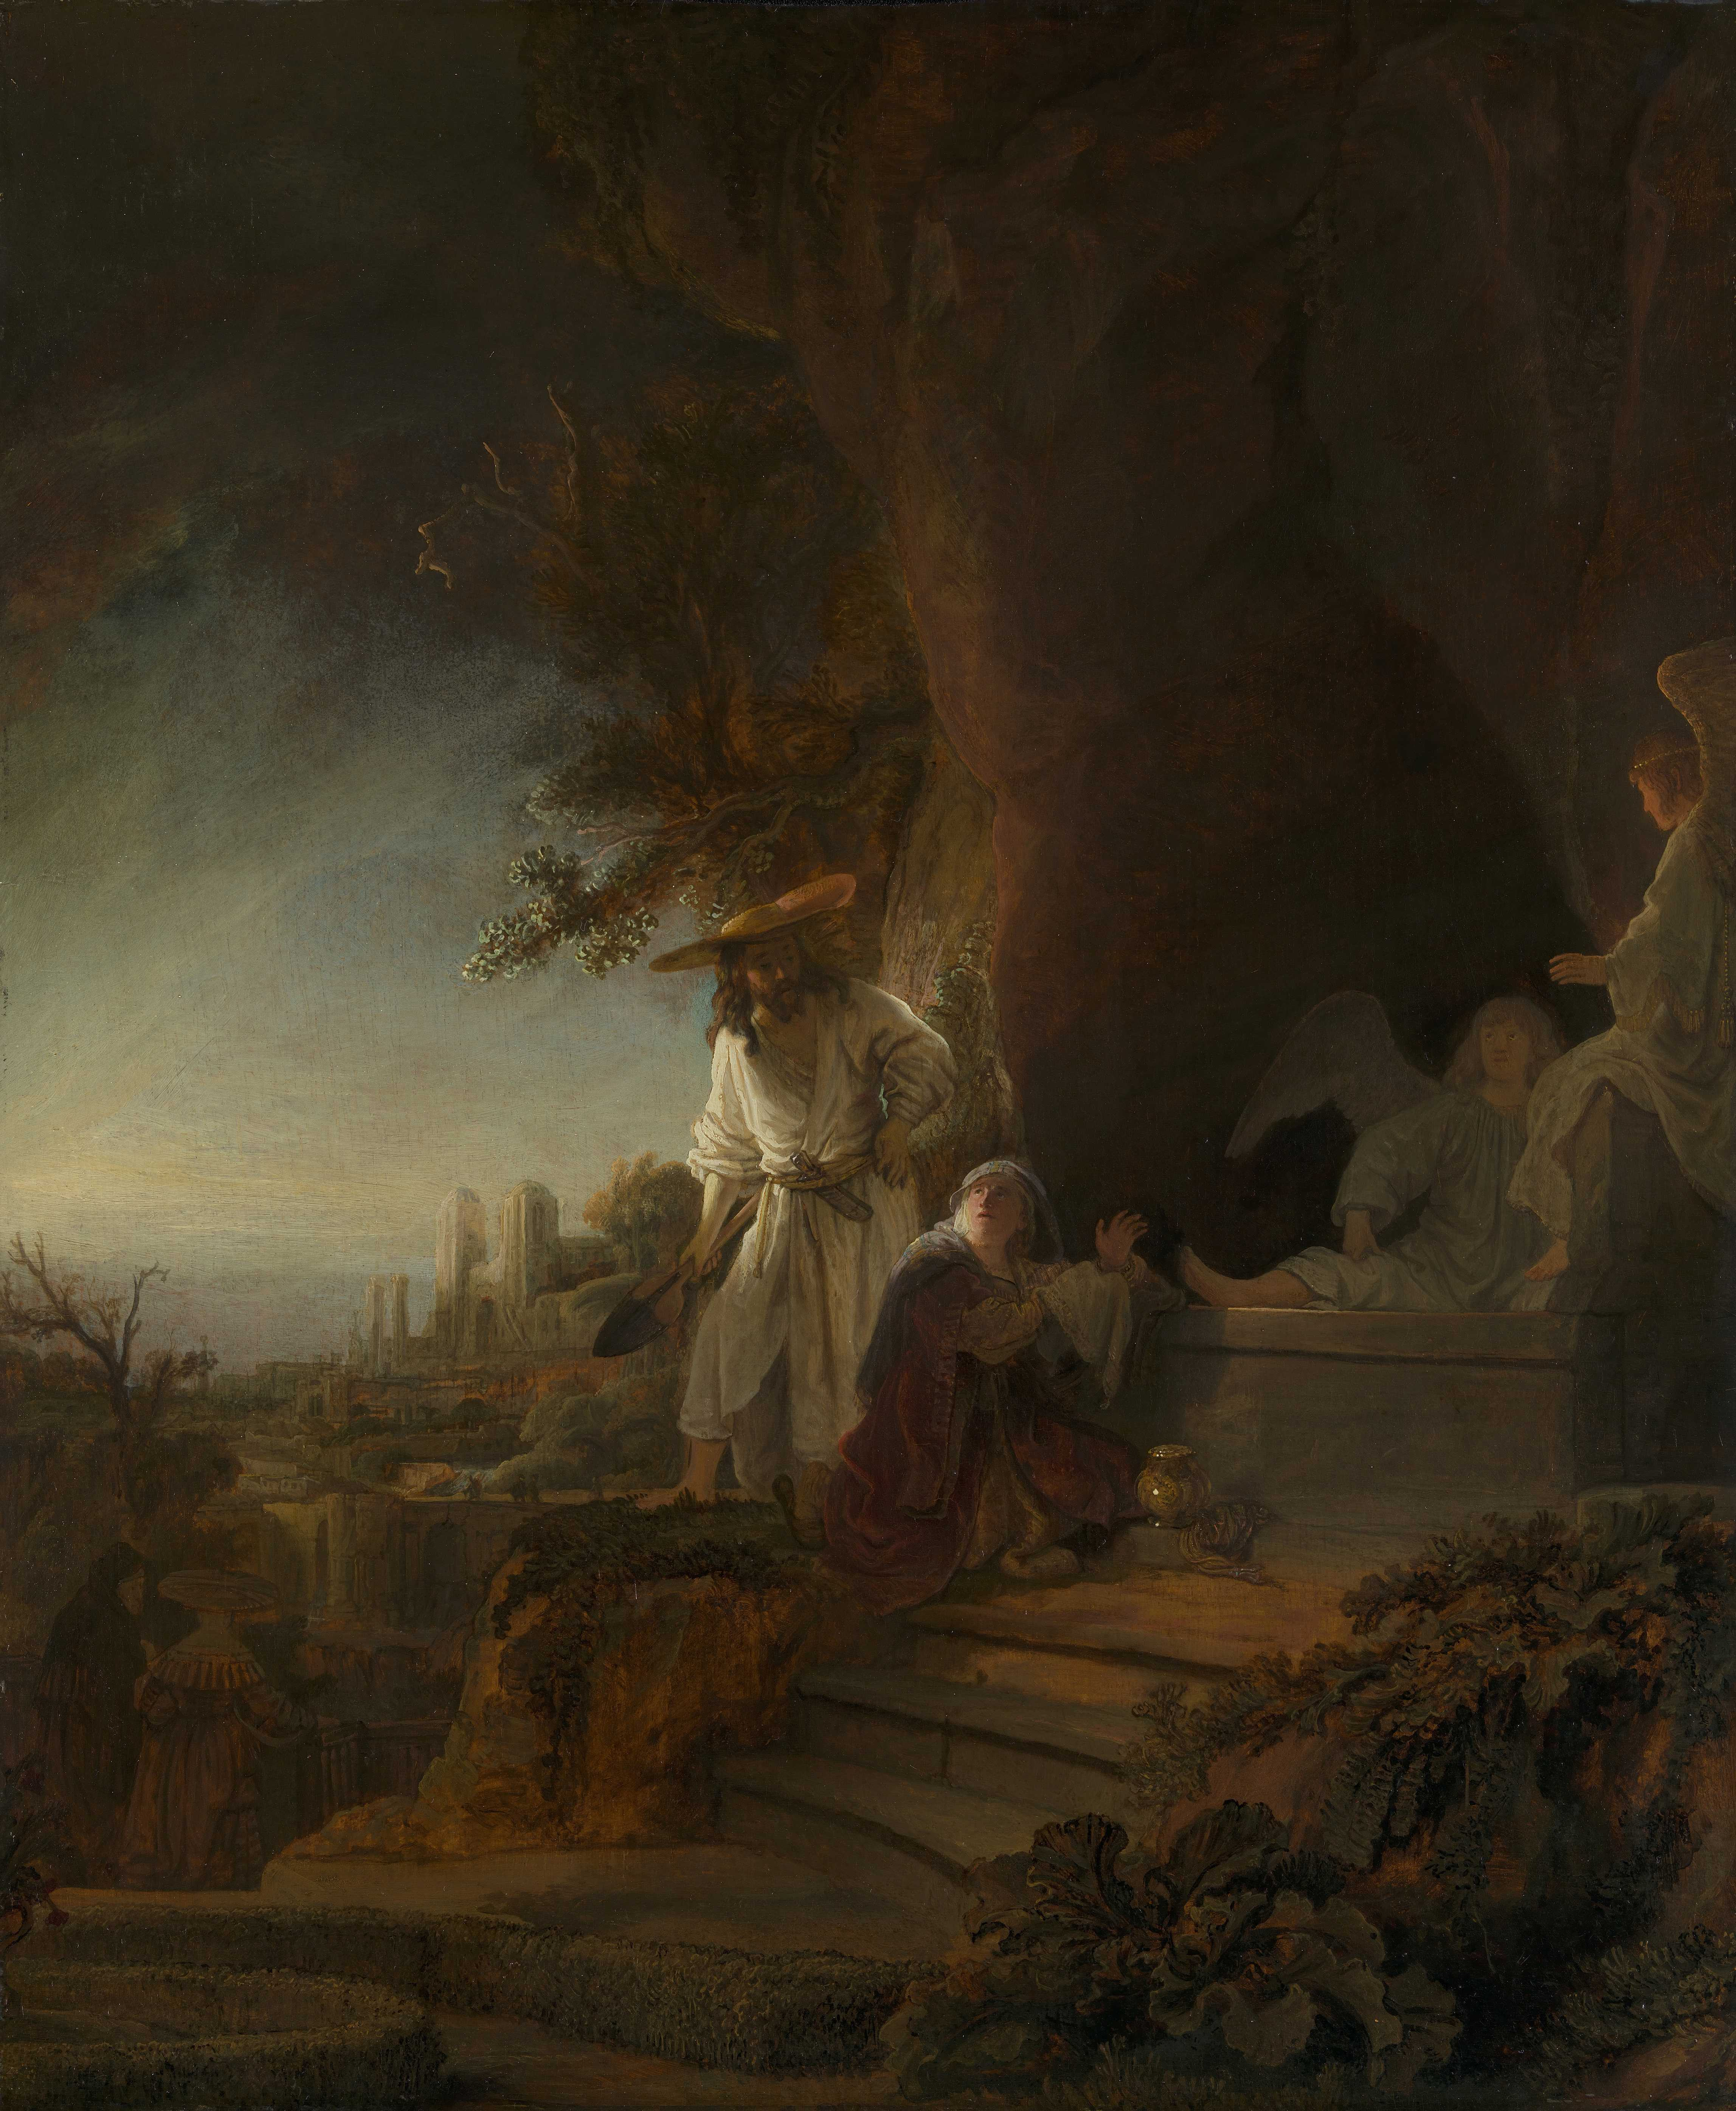 Rembrandt's Light, Exhibition, Dulwich Picture Gallery